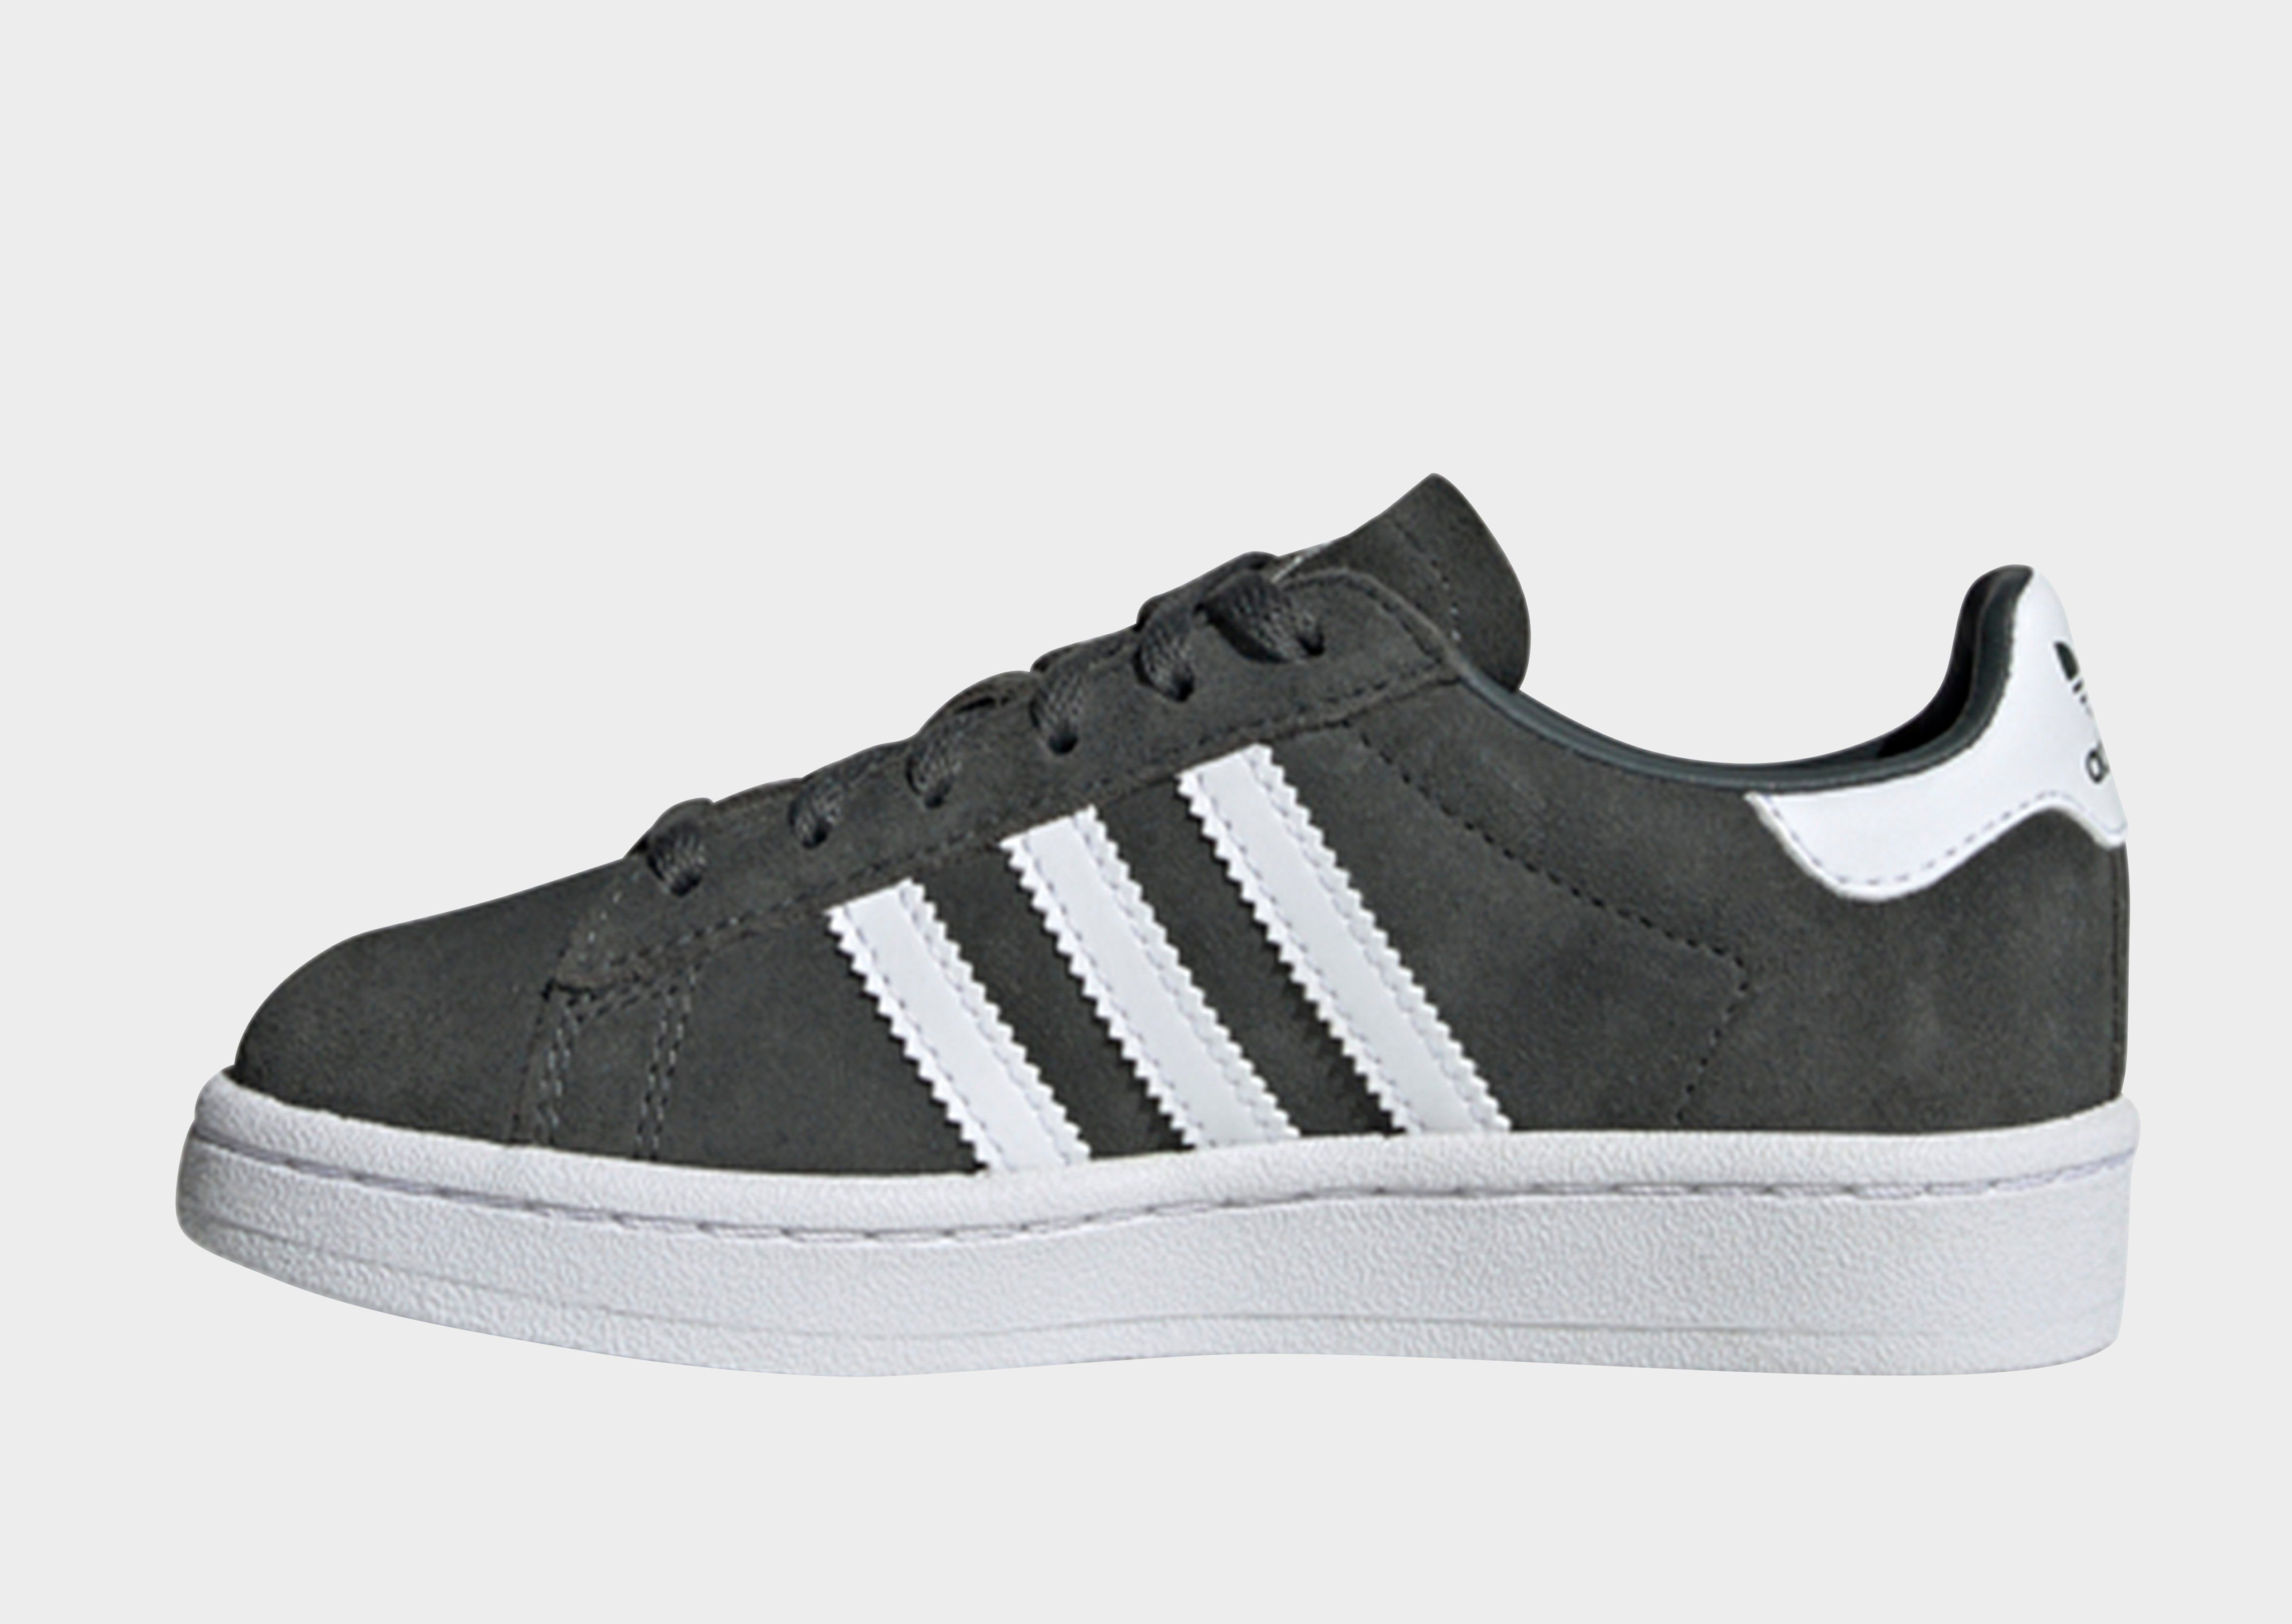 new product b7d5d d8aa8 ADIDAS Campus Shoes   JD Sports